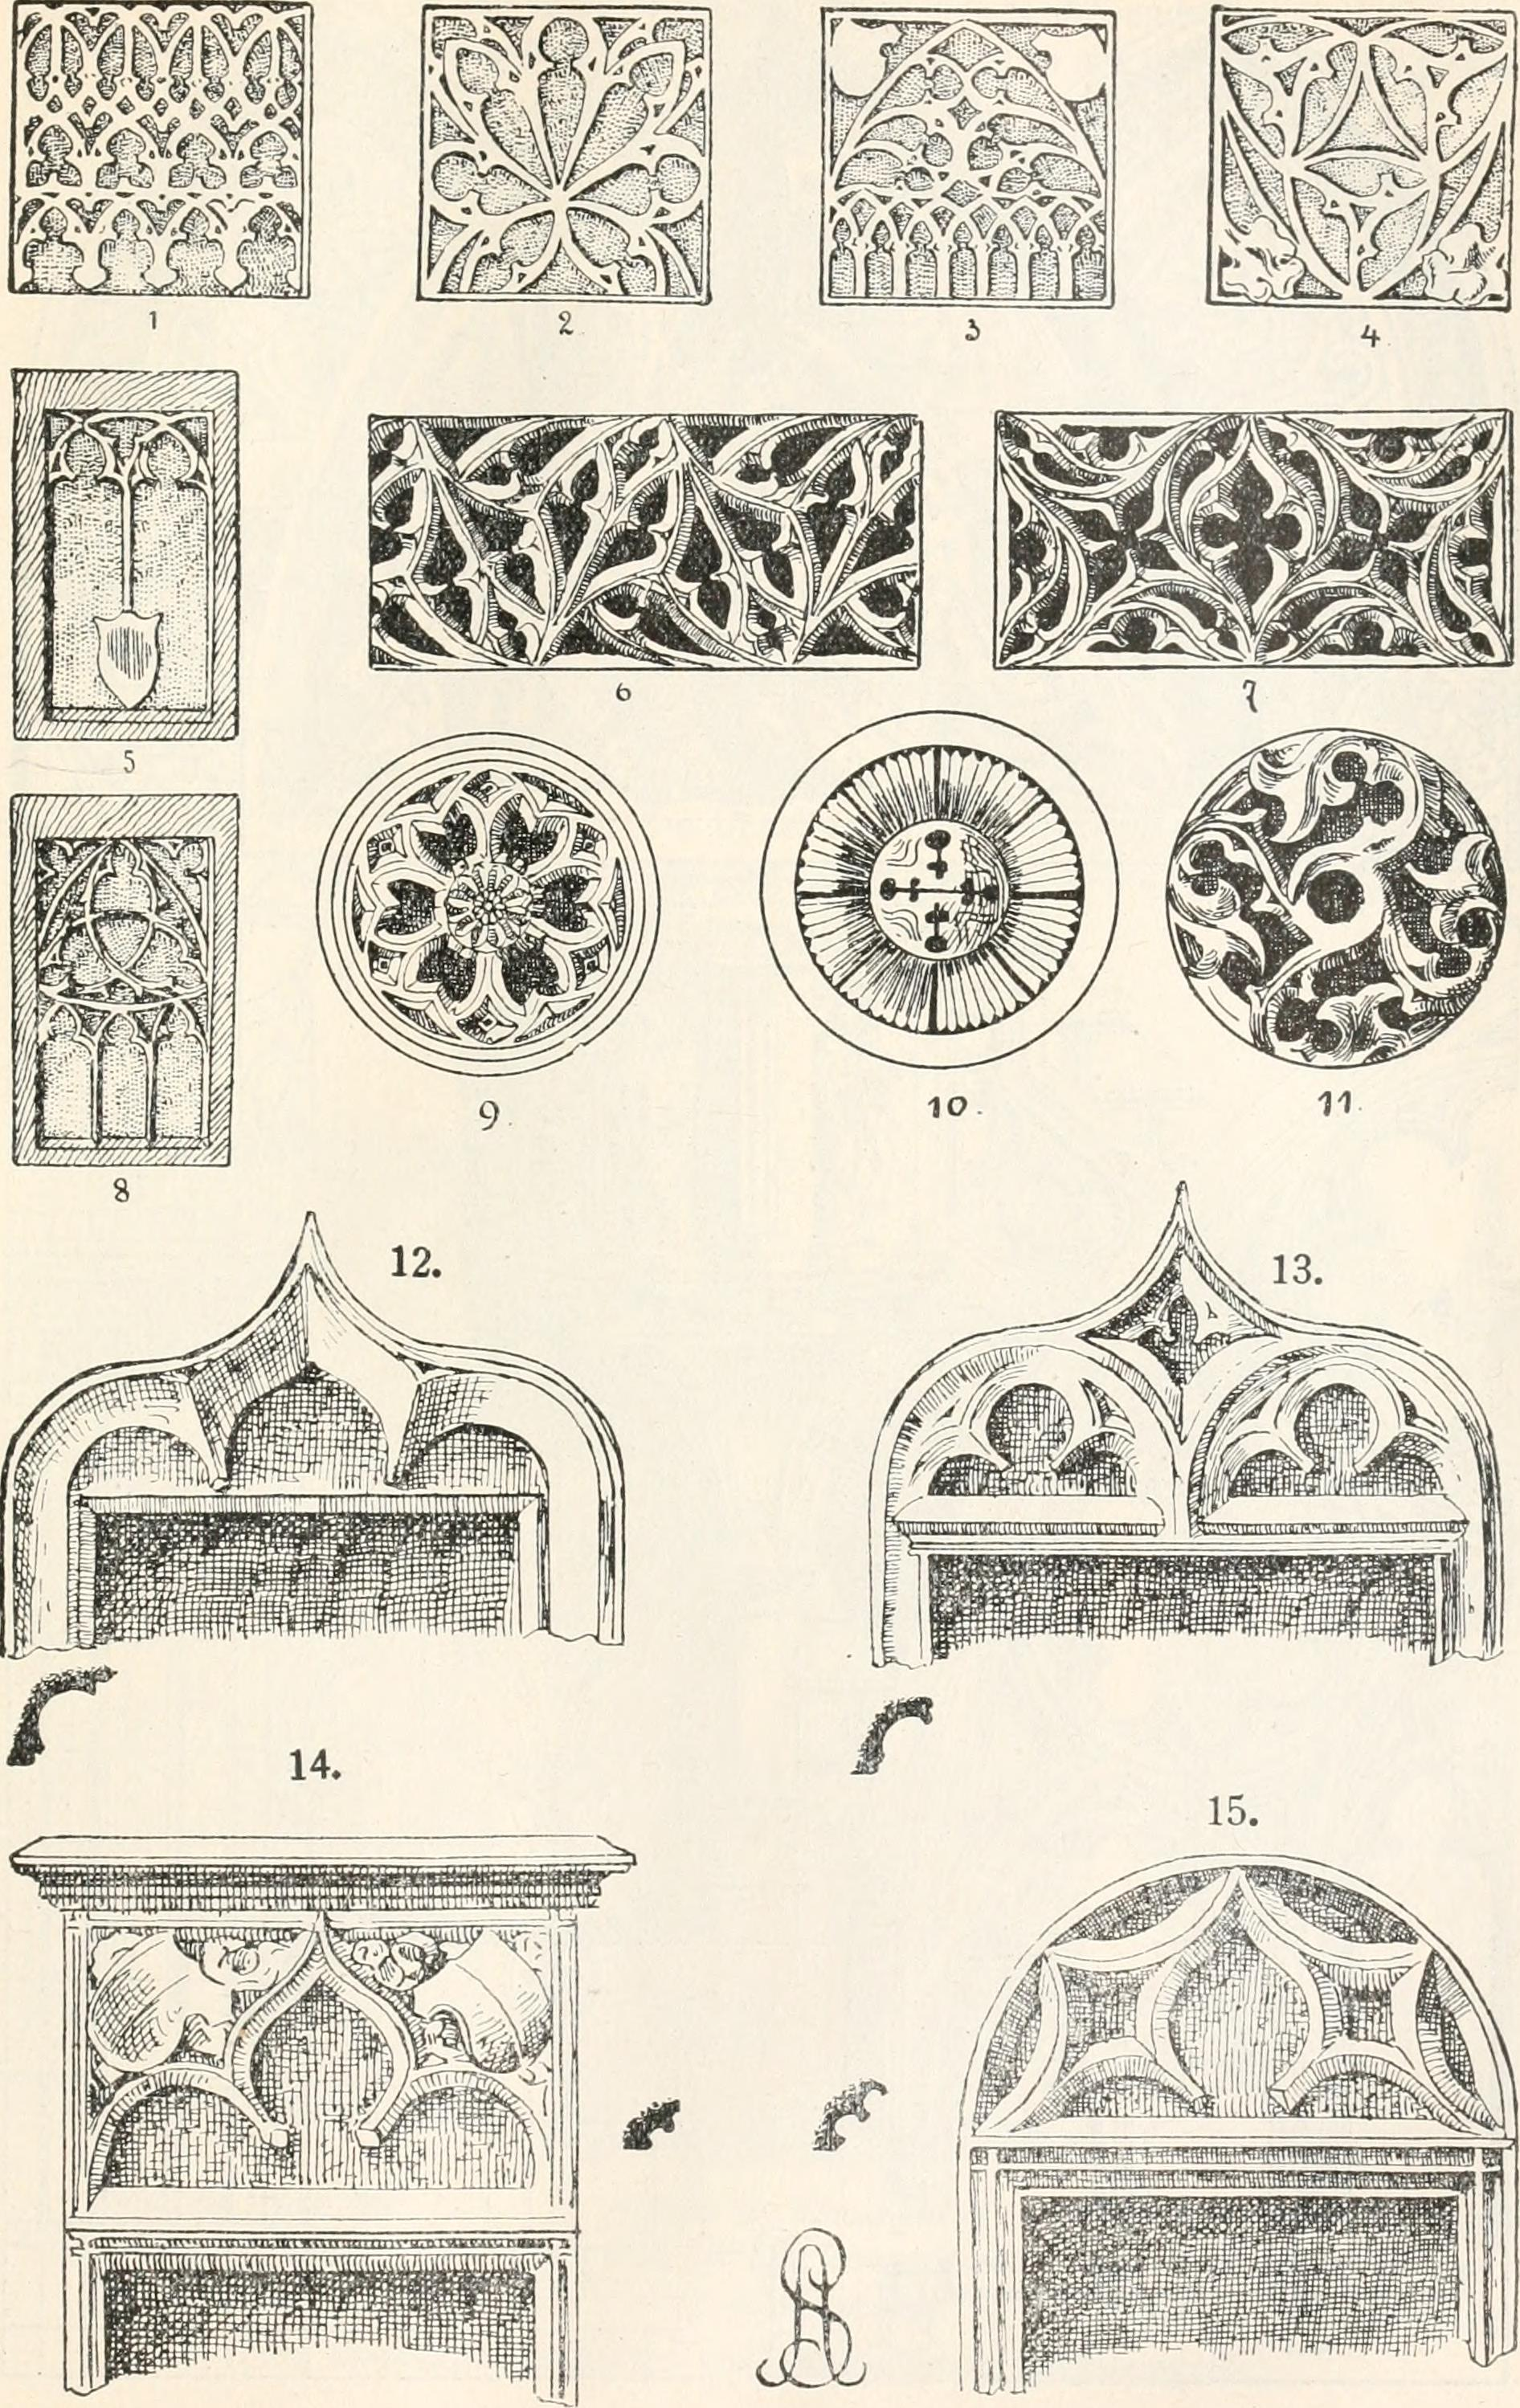 chasers, modellers, (14578720880).jpg English: Identifier: stylesofornament00spel (find matches) Title: Styles of ornament, exhibited in designs, and arranged